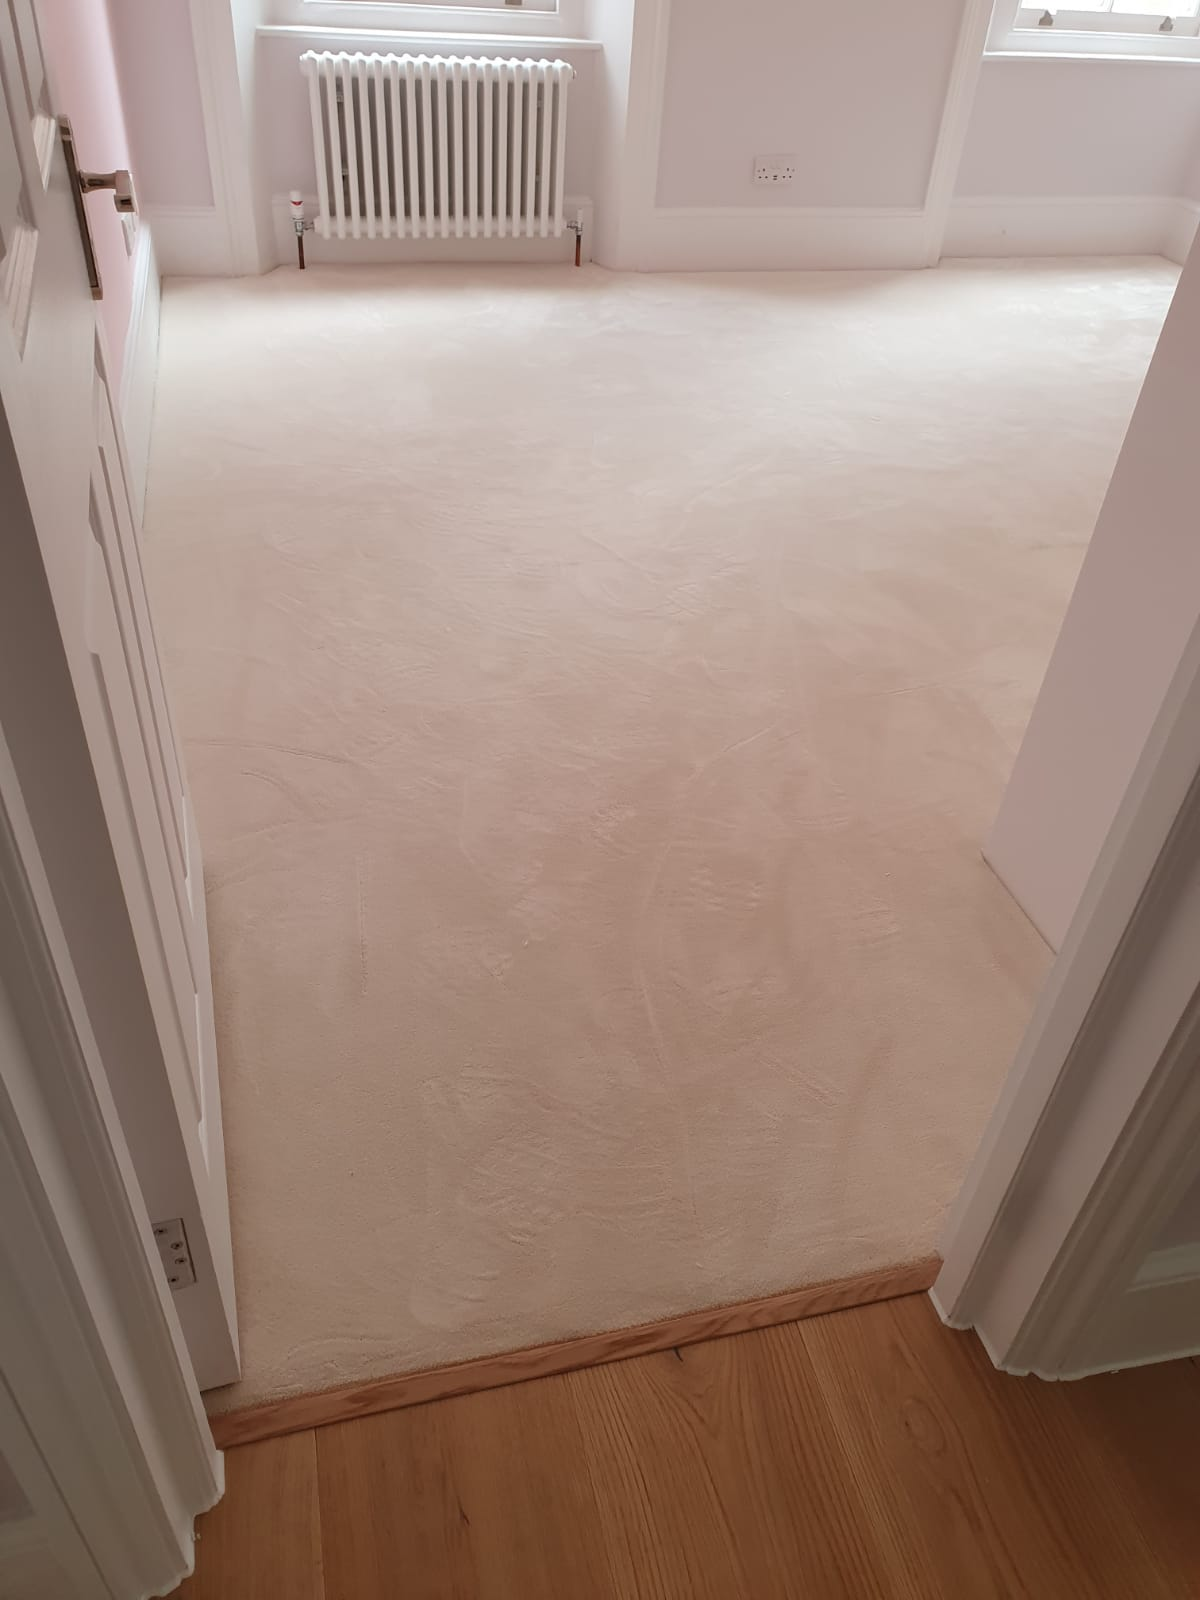 Brockway Carpets Padstow Pebble Mohair Carpet in Chiswick 3